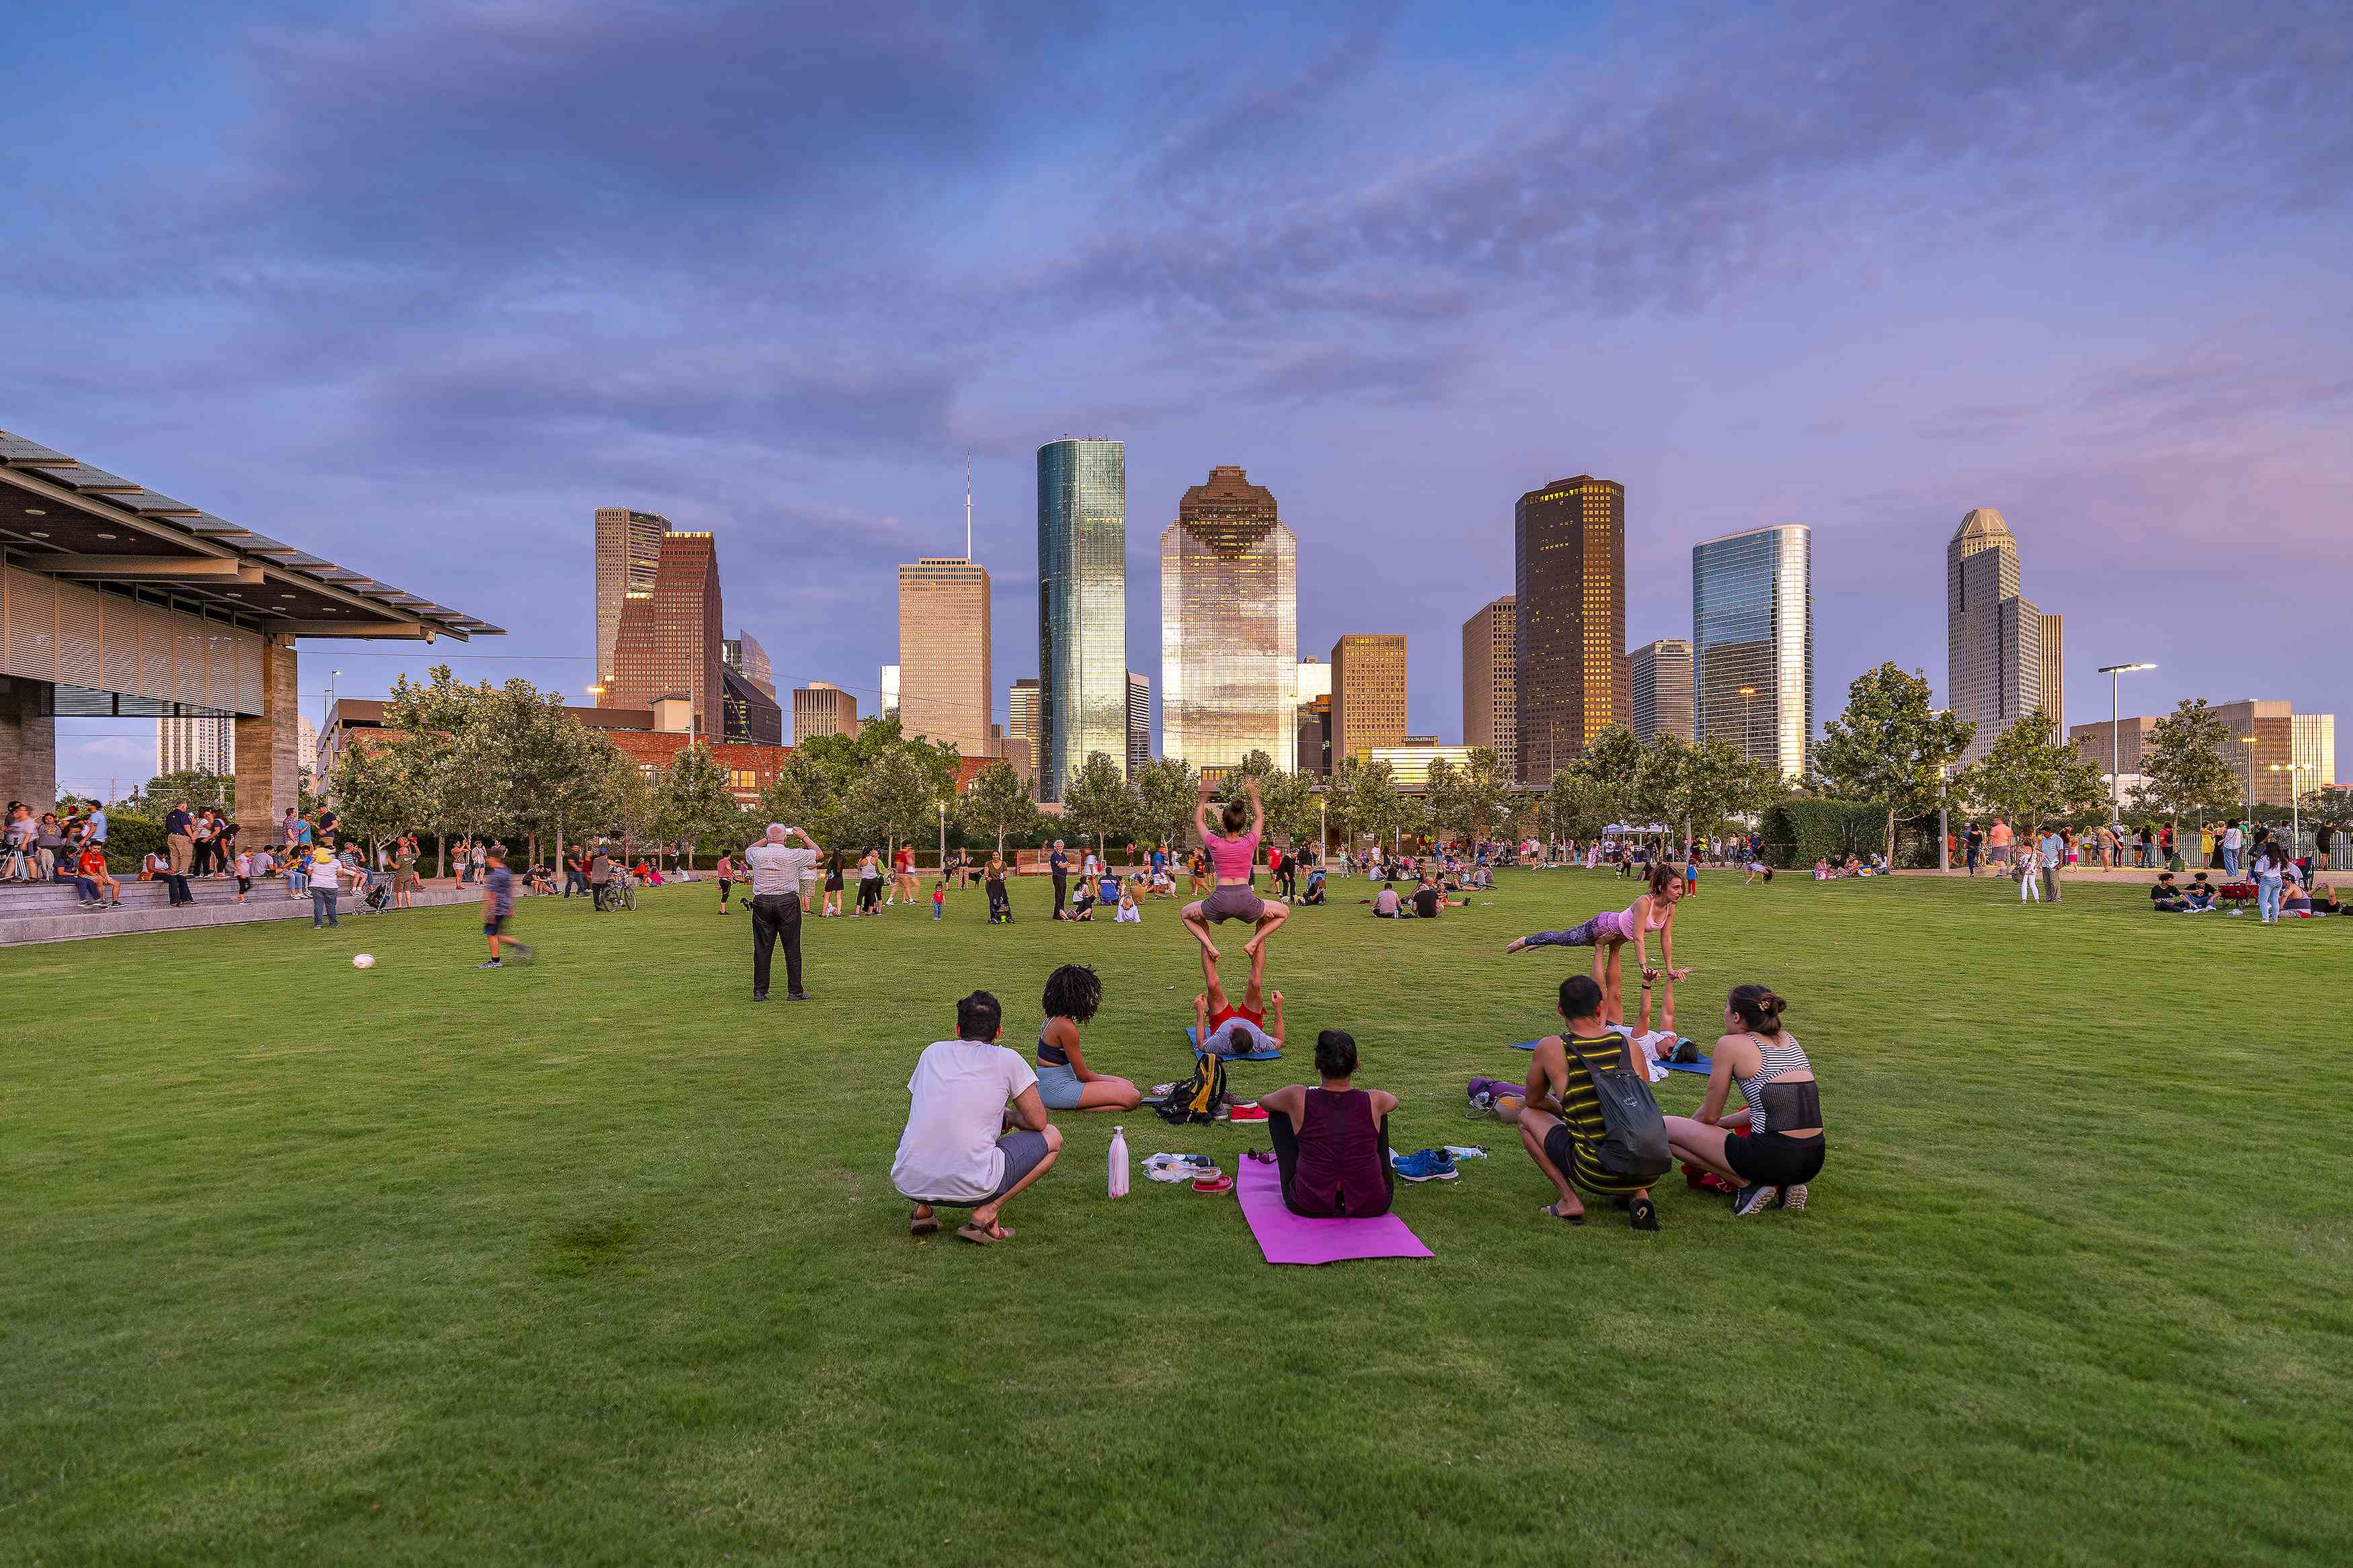 People on the lawn overlooking the skyline at Buffalo Bayou Park